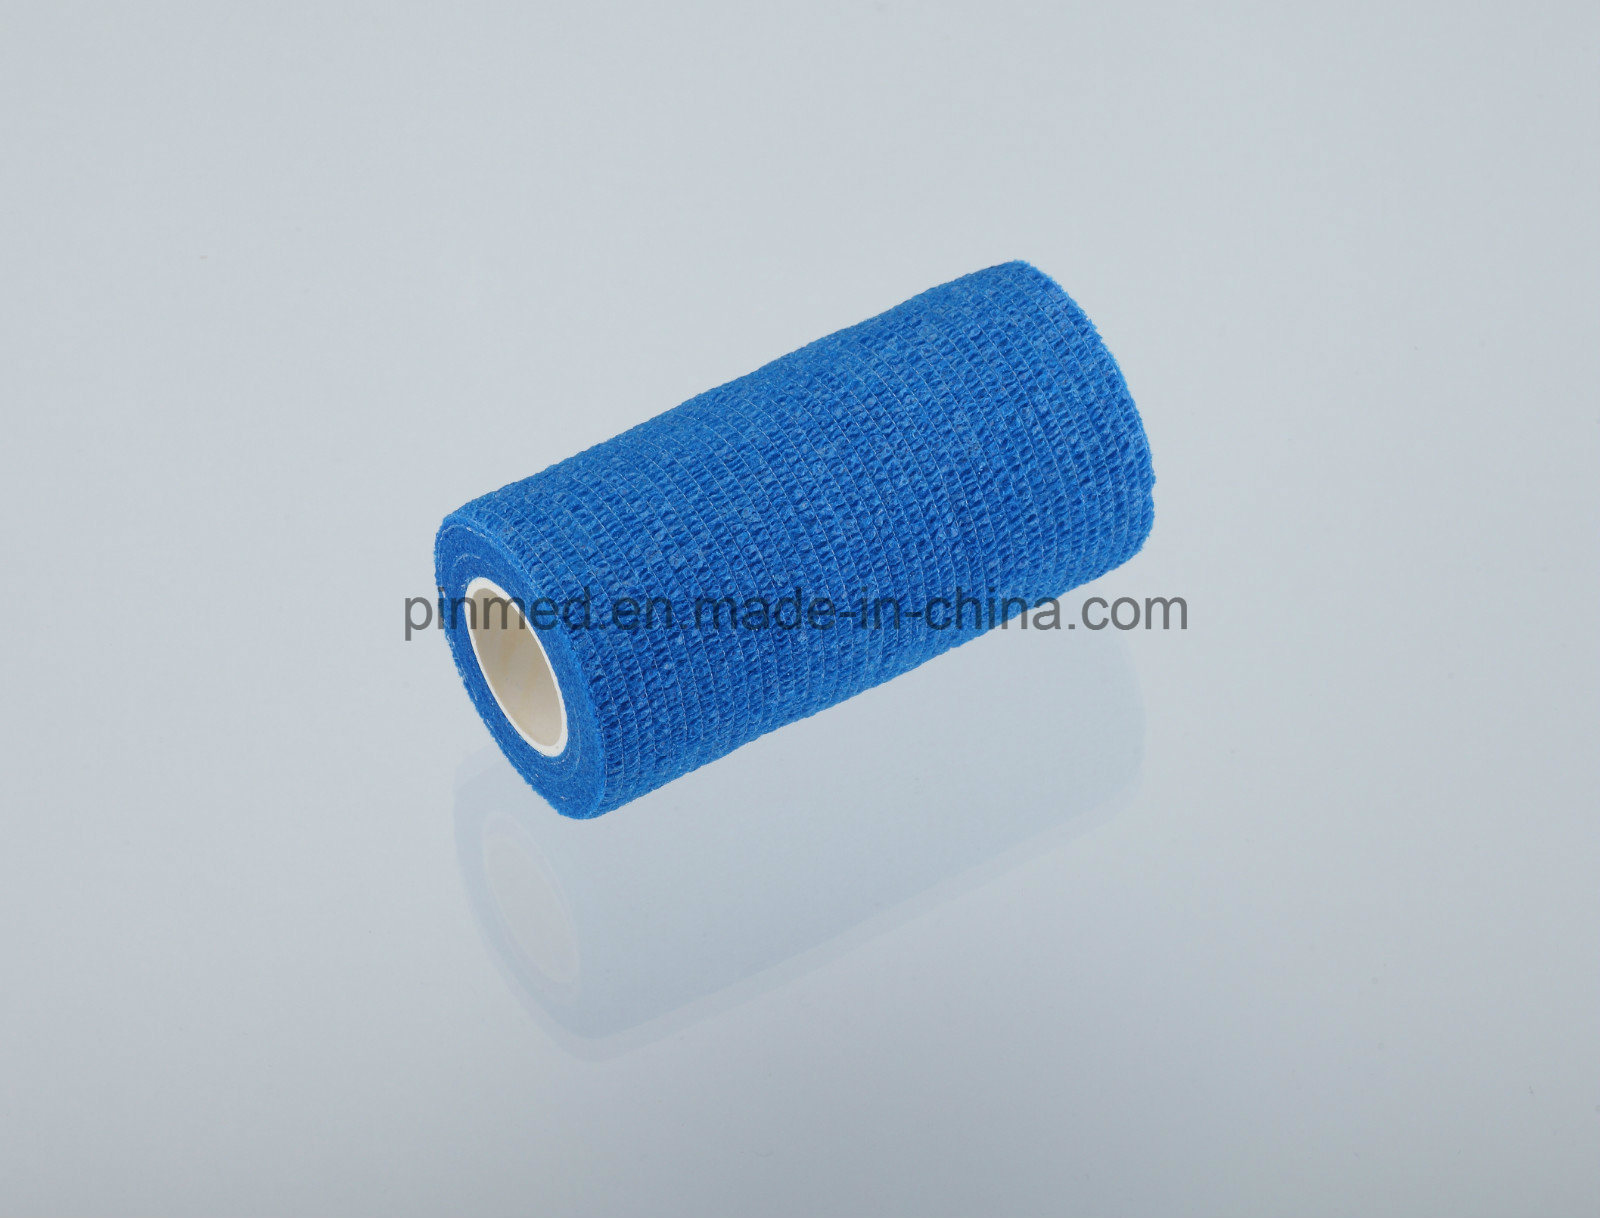 Disposable Non Woven Self-Adhesive Bandage